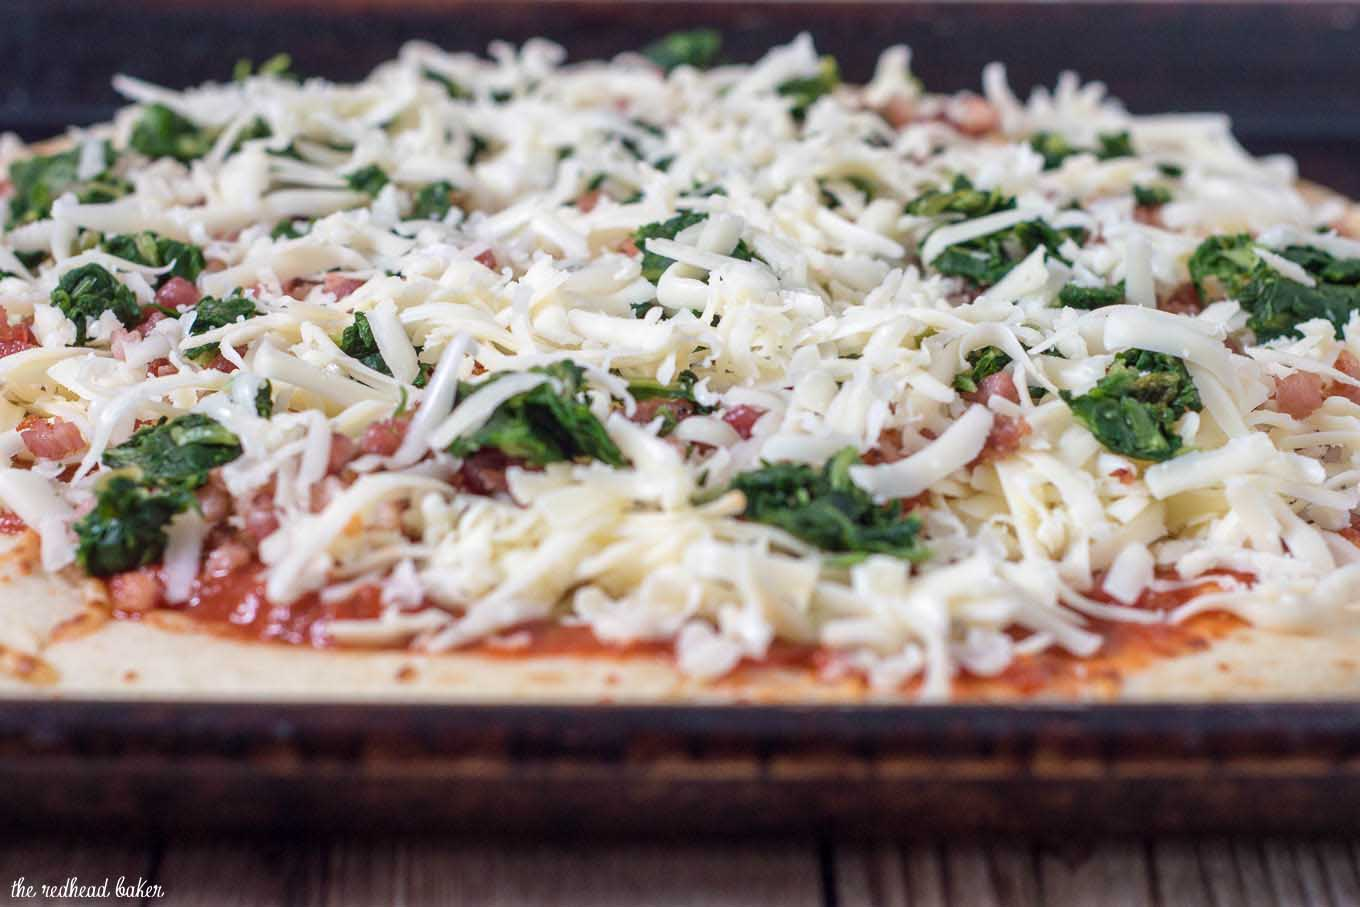 October is National Pizza Month, but this spinach, pancetta and fontina pizza can be enjoyed all year round.